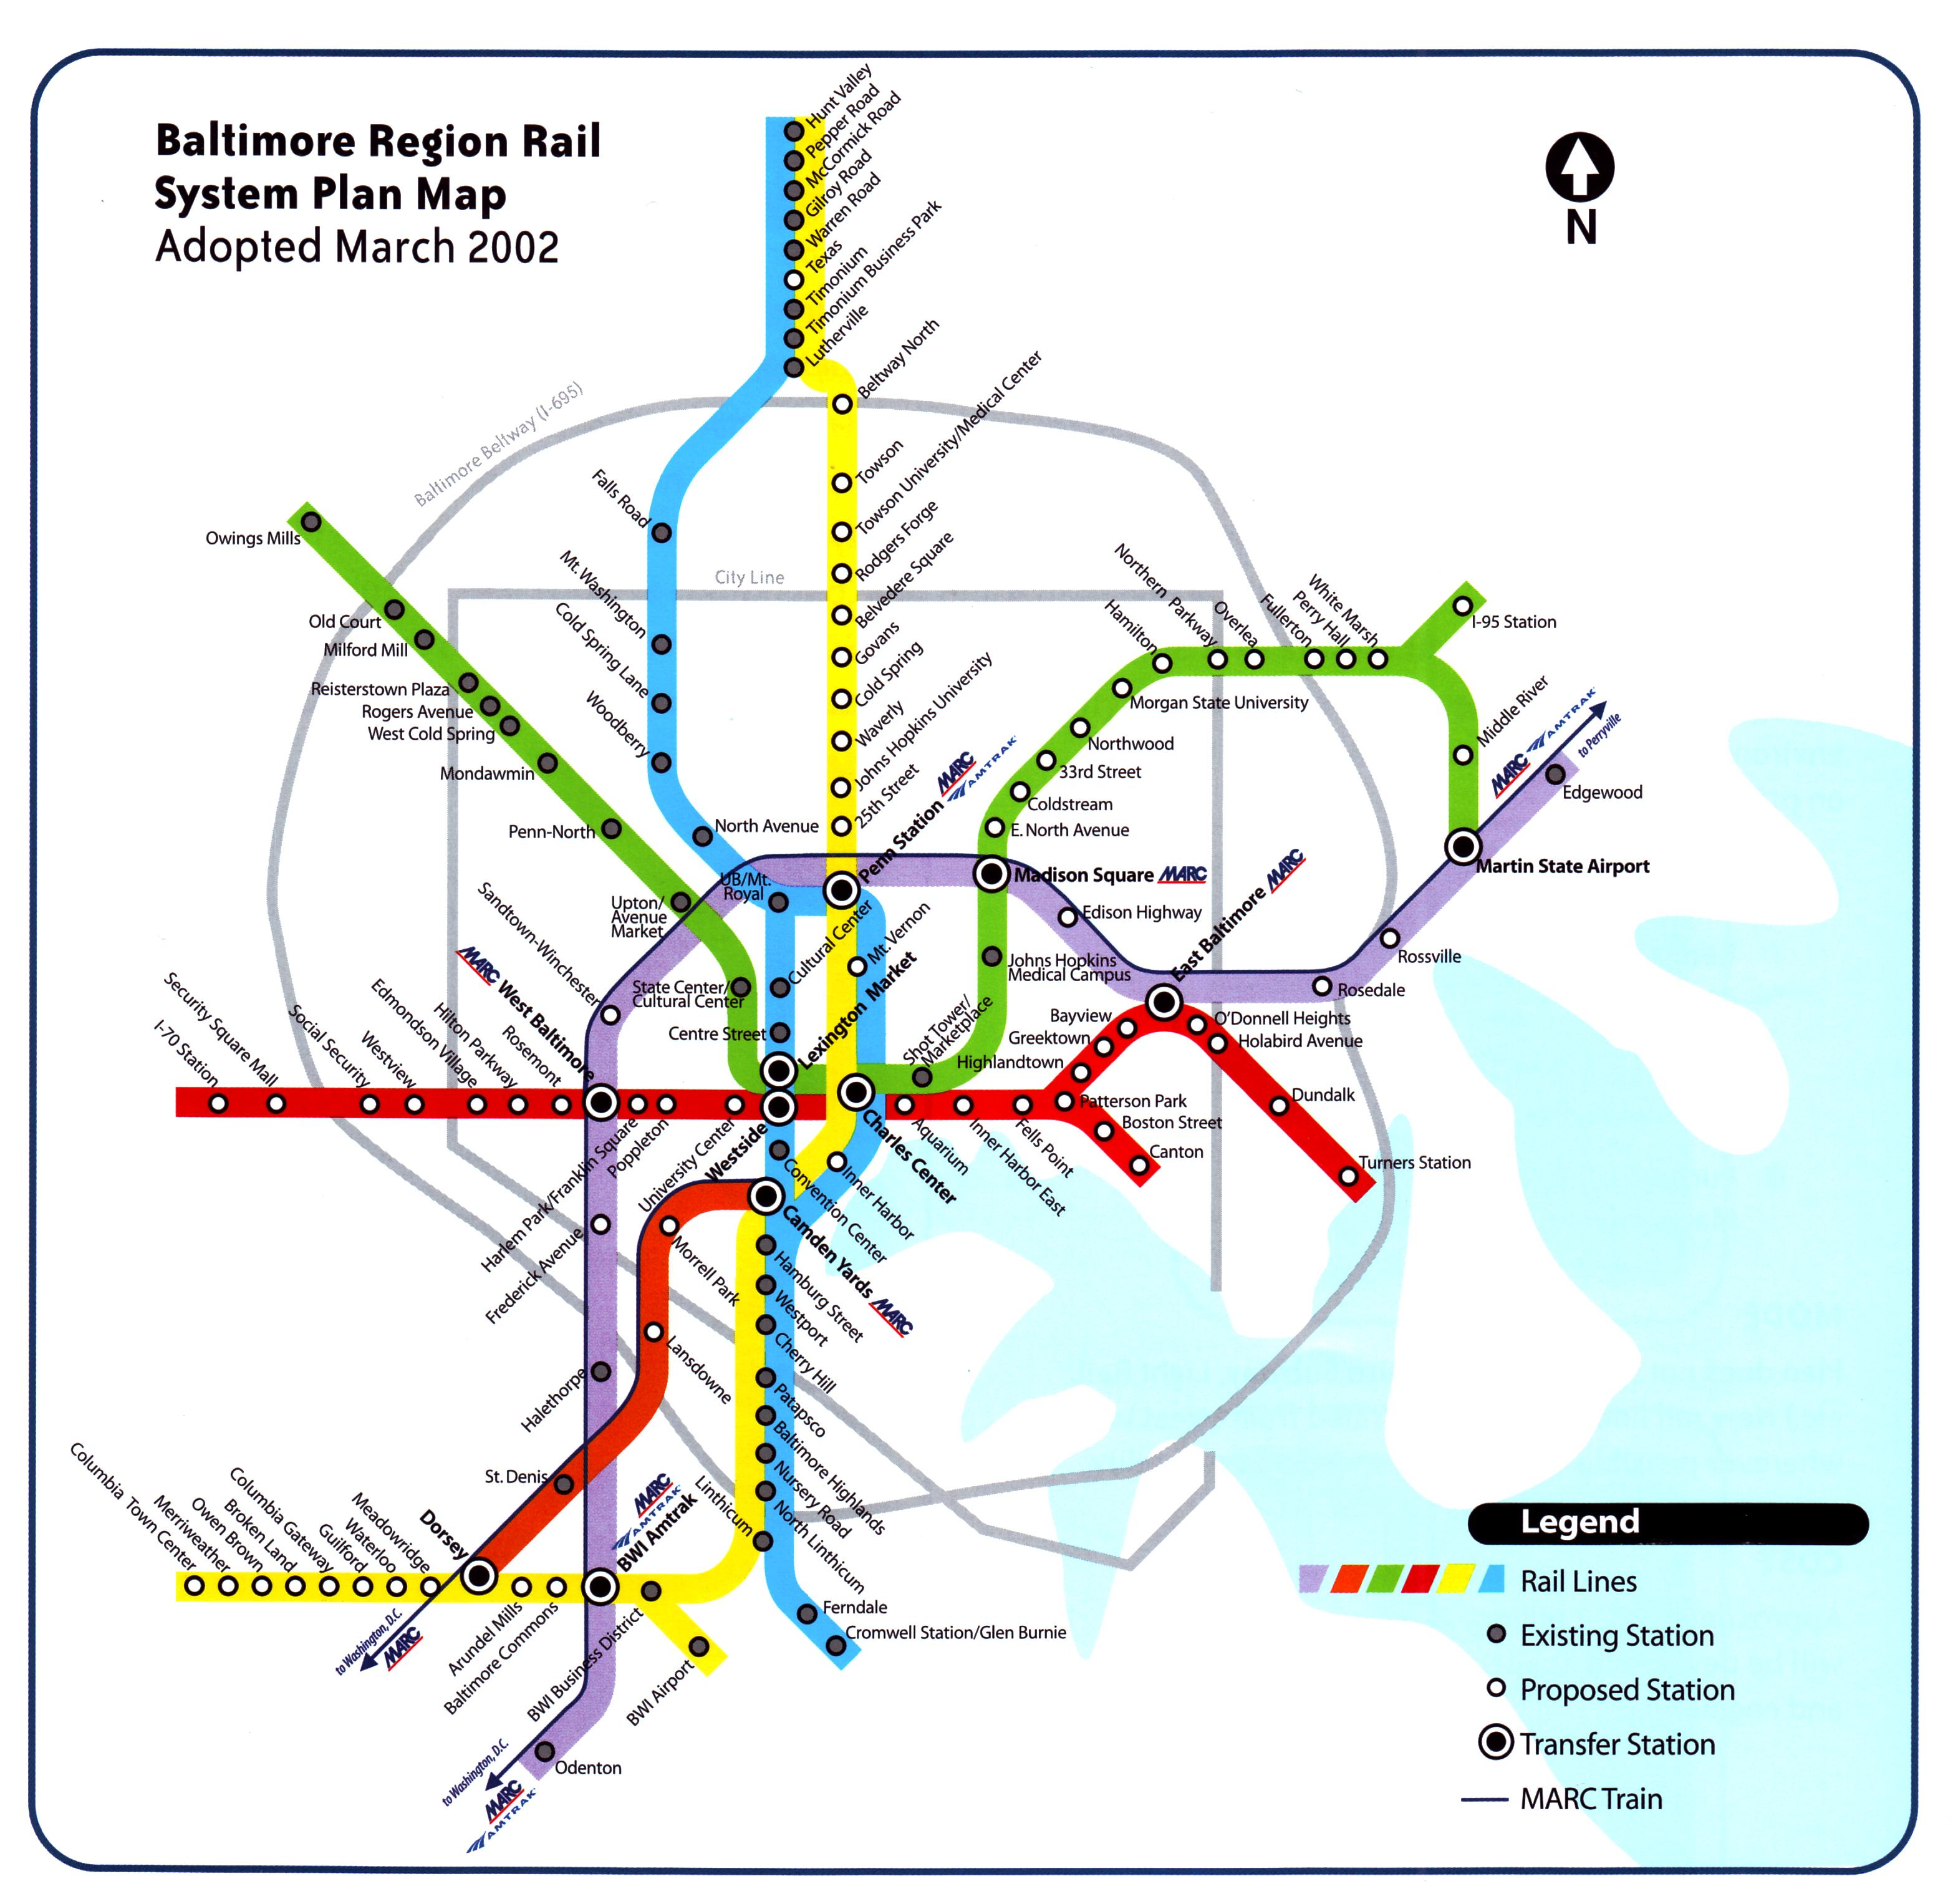 baltimore region rail system plan map adopted march 2002 Baltimore Transit Map baltimore region rail system plan map jpg (752 4kb) baltimore transit map